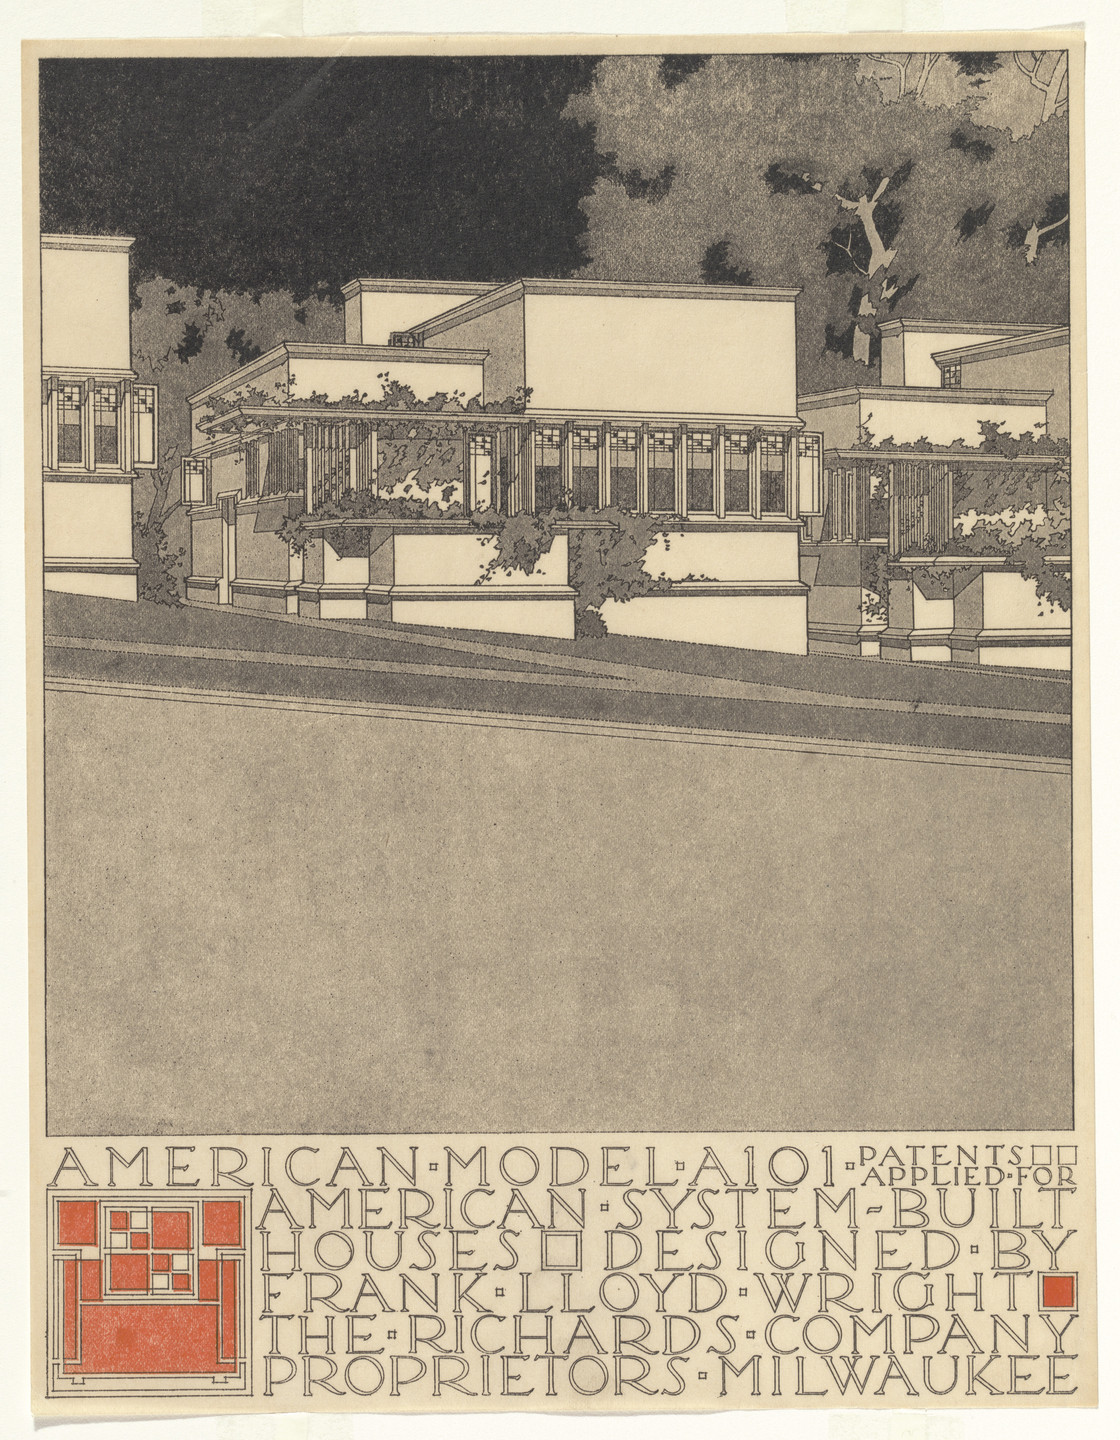 Frank Lloyd Wright. American System-Built Houses for The Richards Company project (Exterior perspective of model A101). 1915–1917